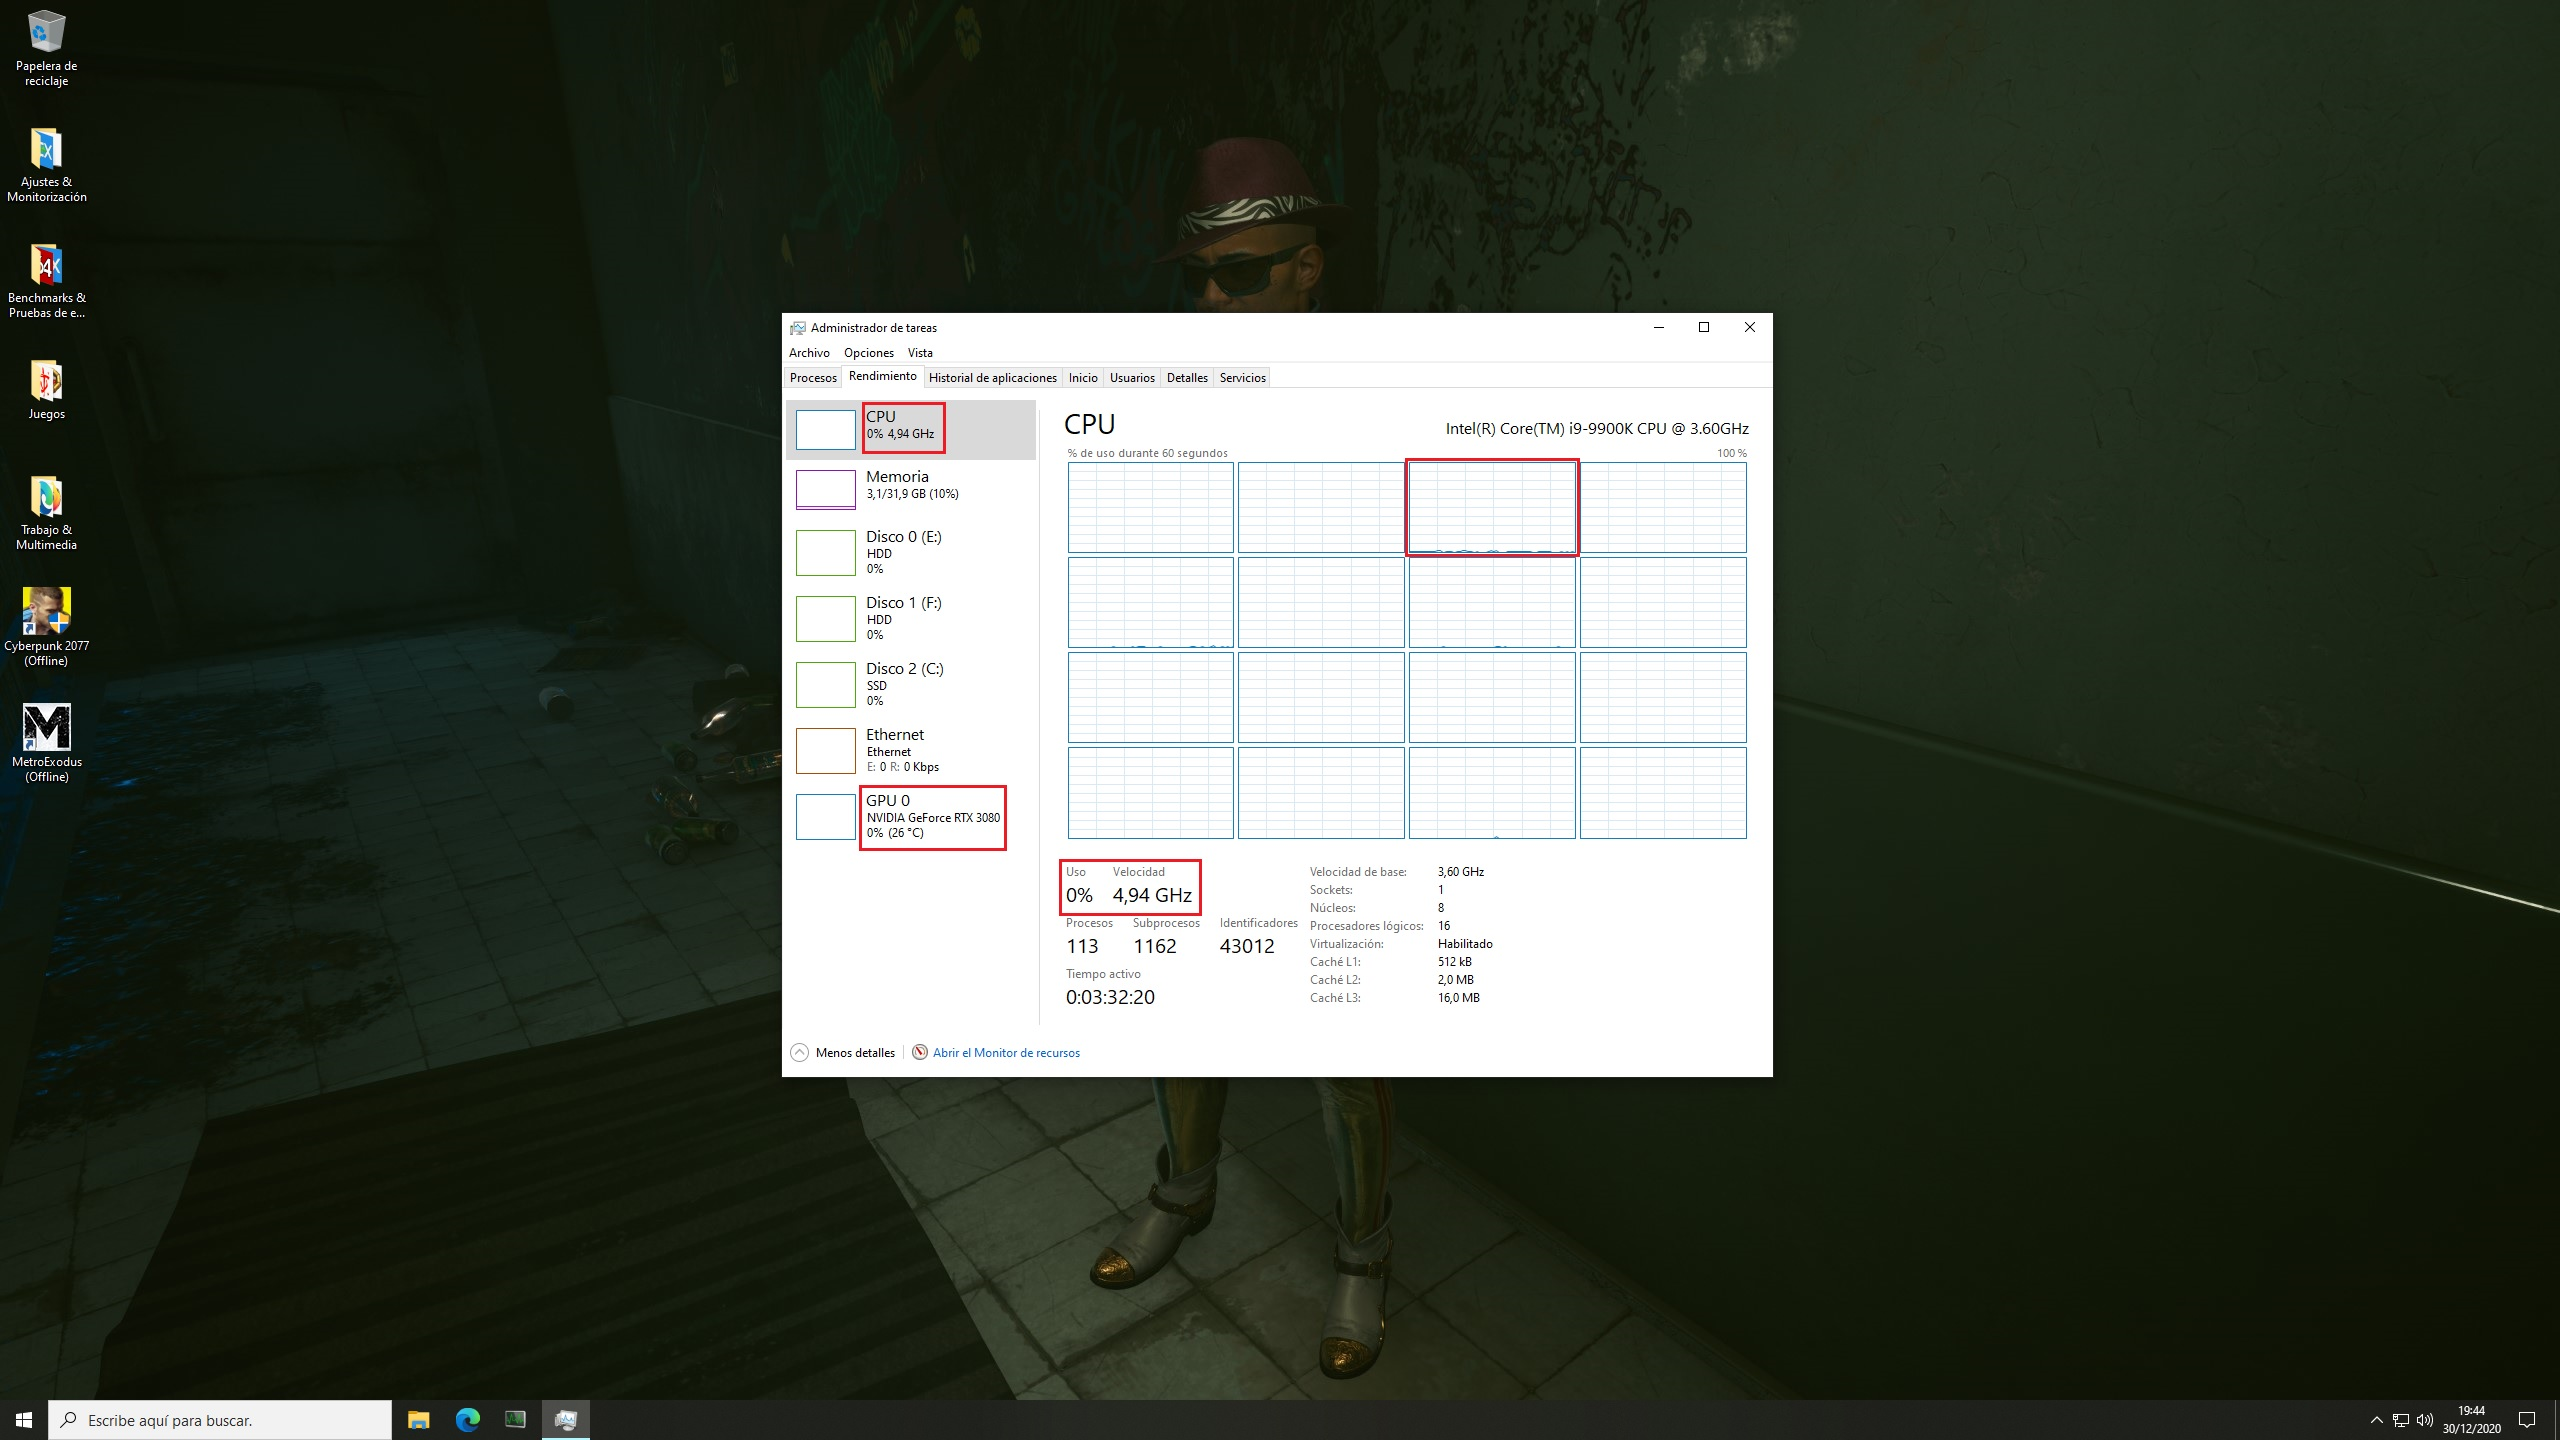 PC Game Launchers Efficiency – Bethesda.net Launcher on idle state – Windows 10 Task Manager Performance Tab